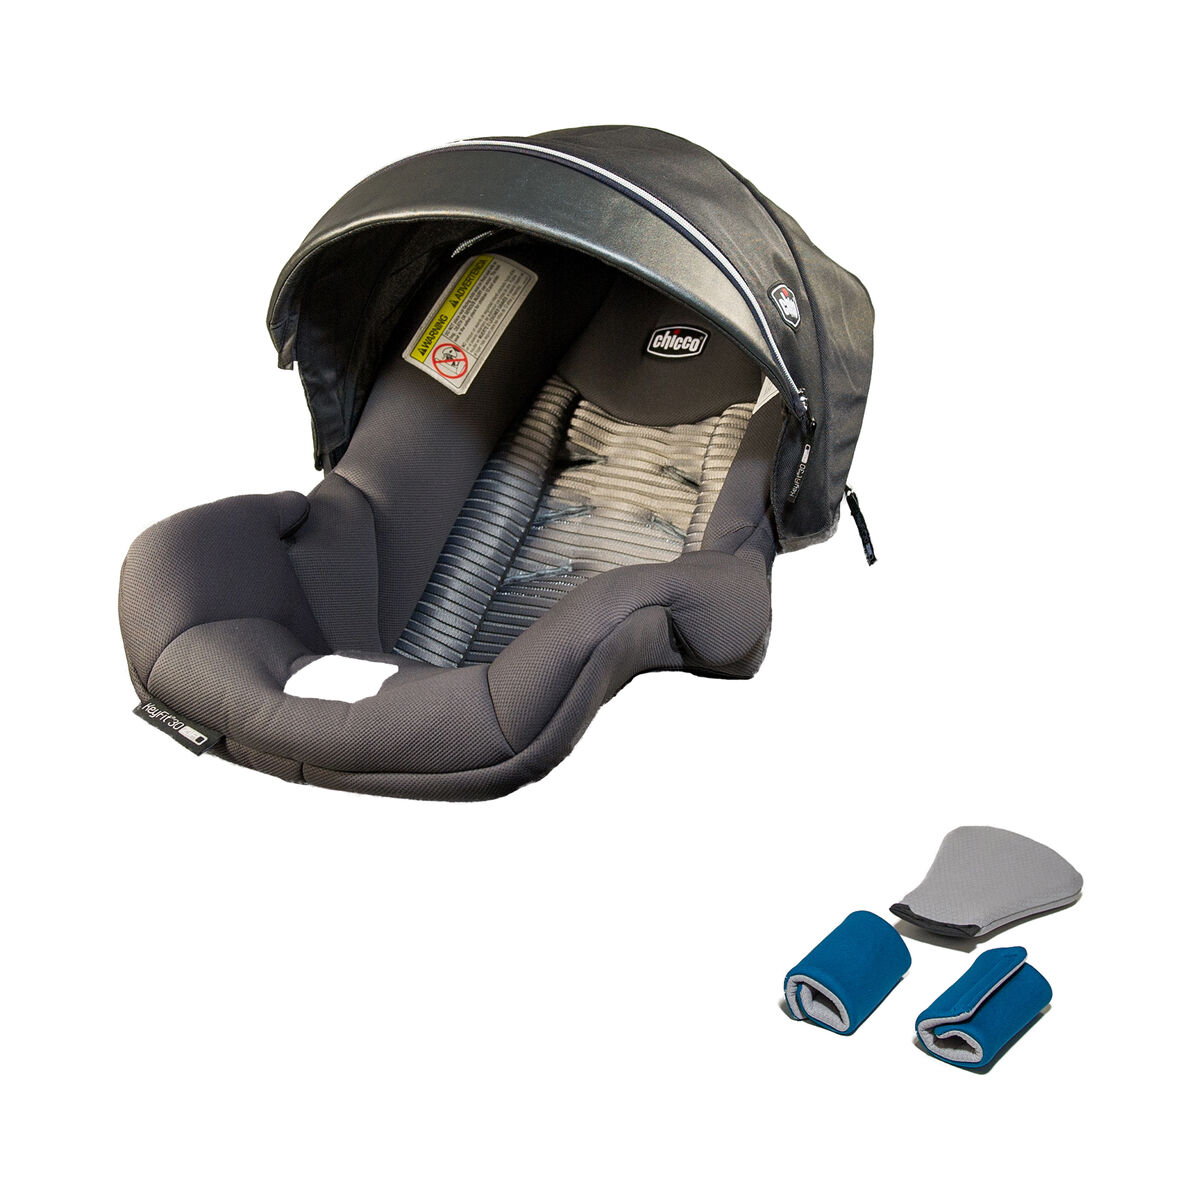 Buy Infant Car Seats products at Babies